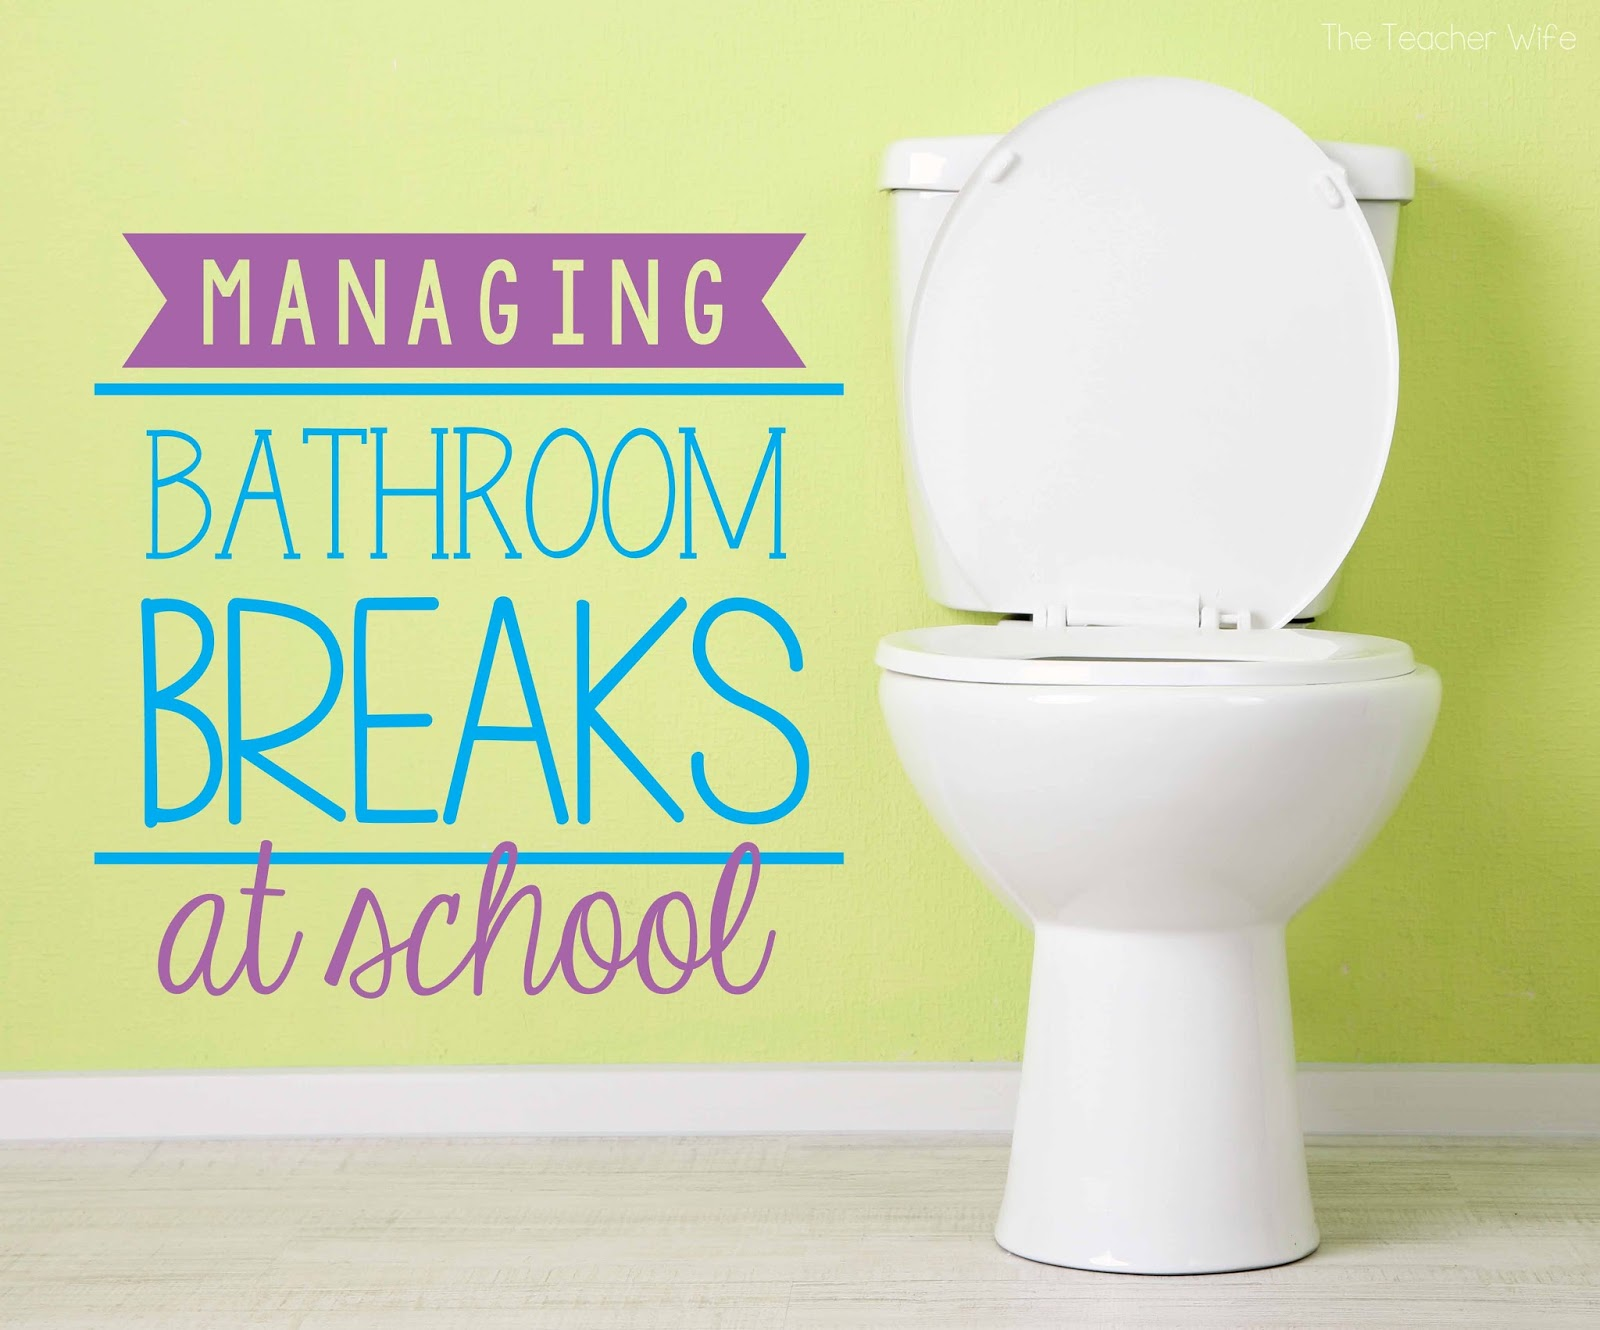 How to use the bathroom com - Managing Bathroom Breaks Can Be Tricky If You Teach Younger Grades Then You Know That Kids Pretty Much Have To Go To The Bathroom All The Time